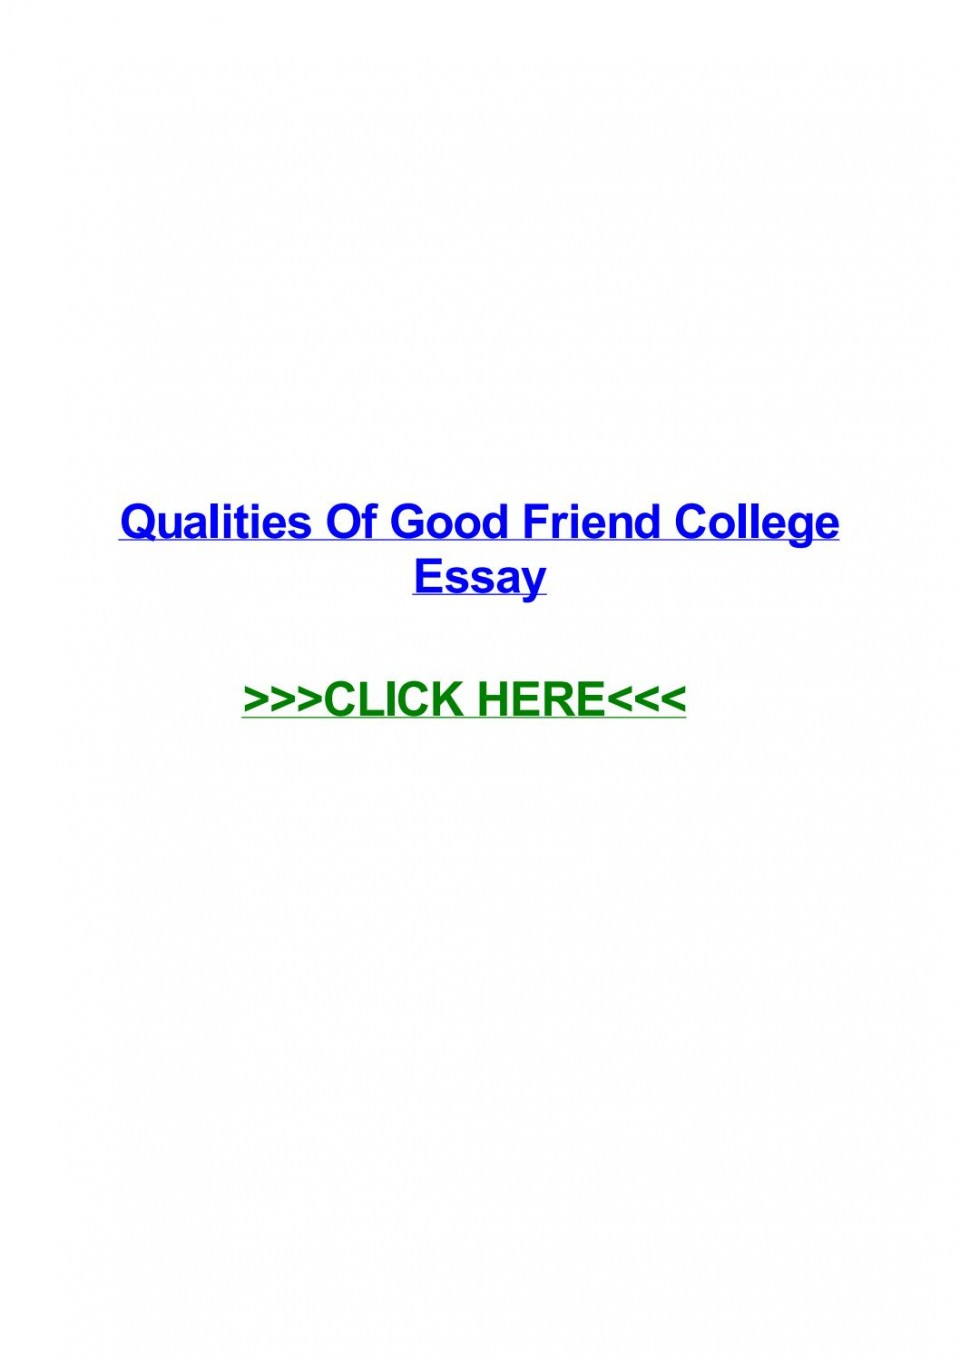 005 Essay Example Page 1 Qualities Of Good Amazing Friends A Friend Conclusion In Hindi Spm 960